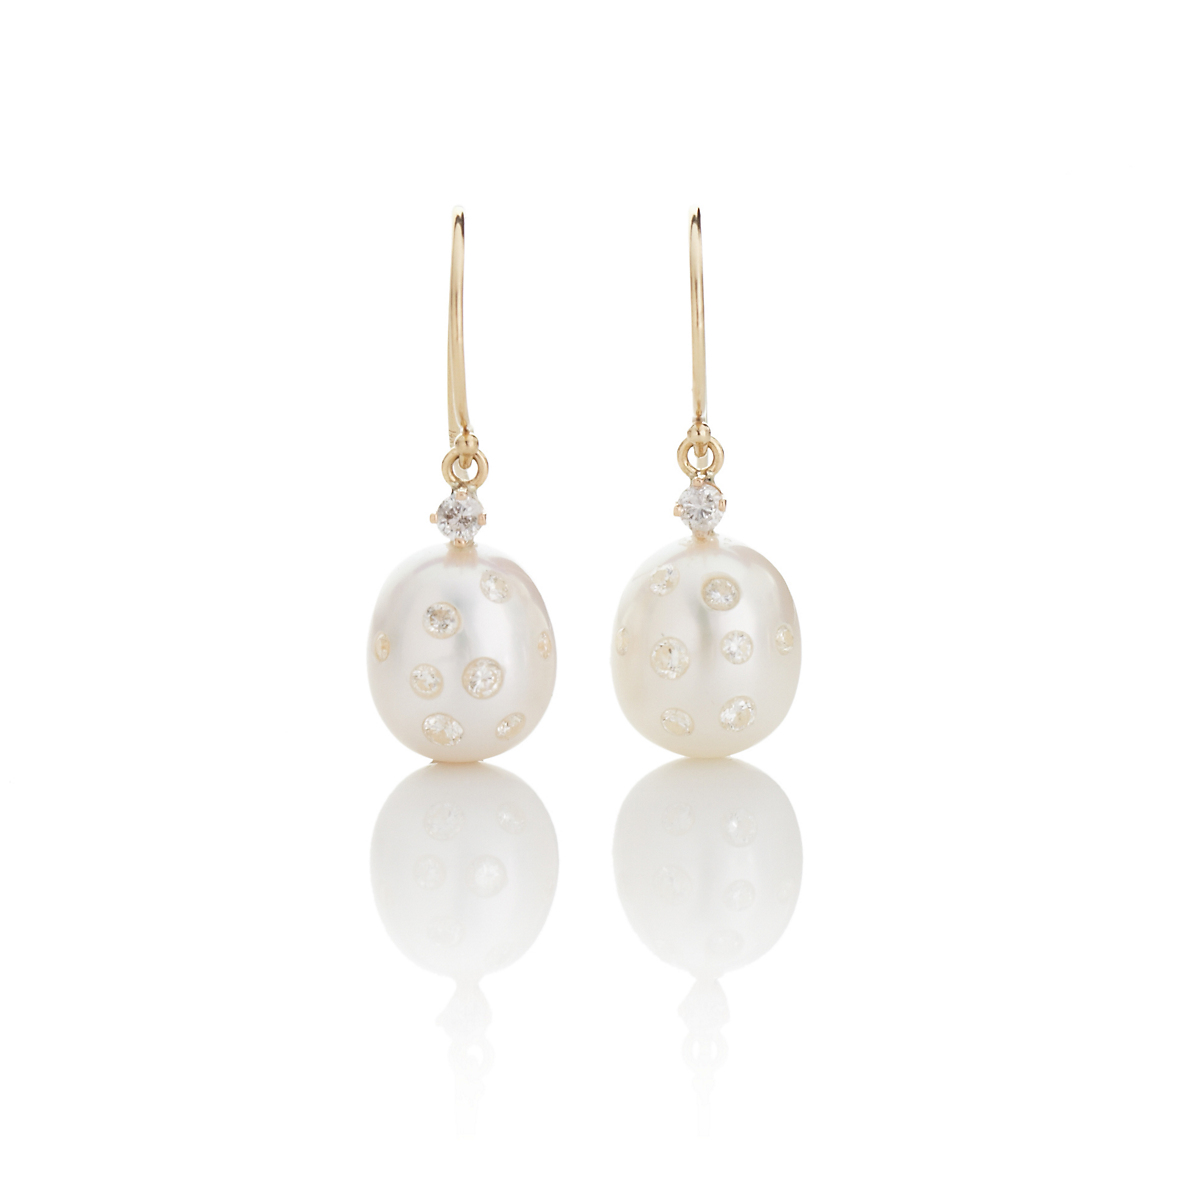 Russell Trusso White Freshwater Pearl & Embedded Diamond Drop Earrings